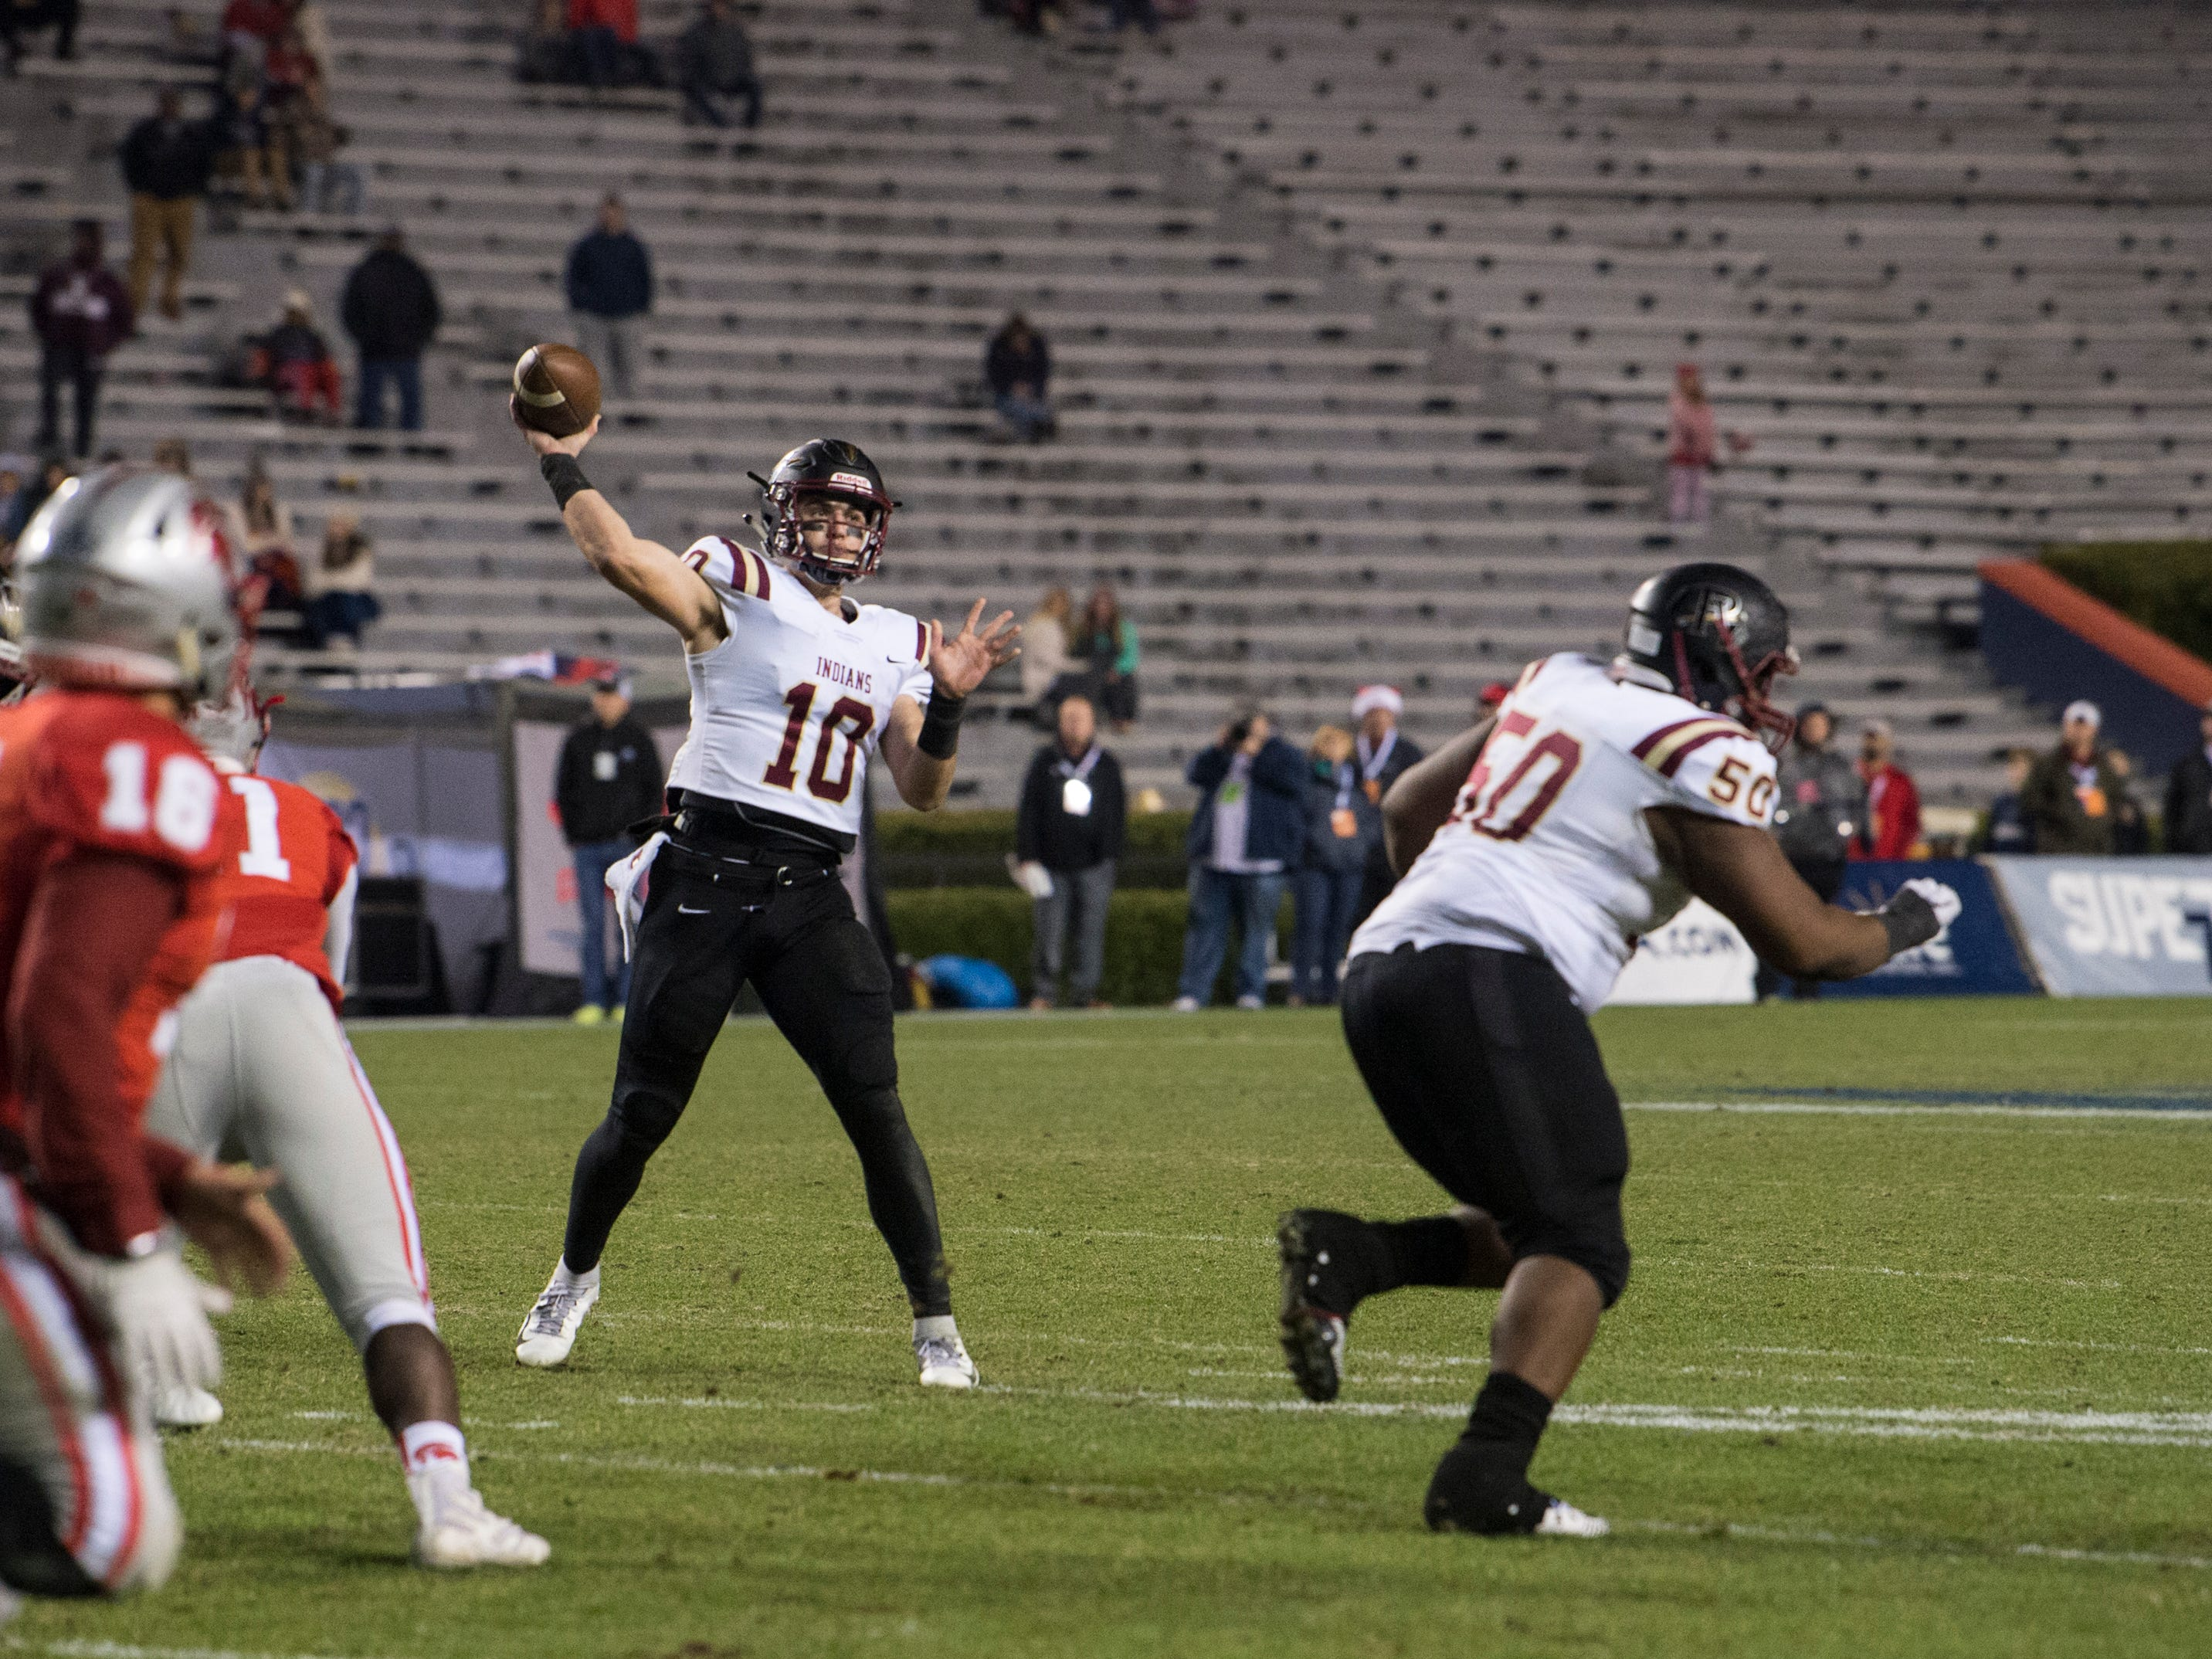 Pinson Valley's Bo Nix (10) throws the ball down field during the Class 6A state championship at Jordan-Hare Stadium in Auburn, Ala., on Friday, Dec. 7, 2018. Pinson Valley defeated Saraland 26-17.